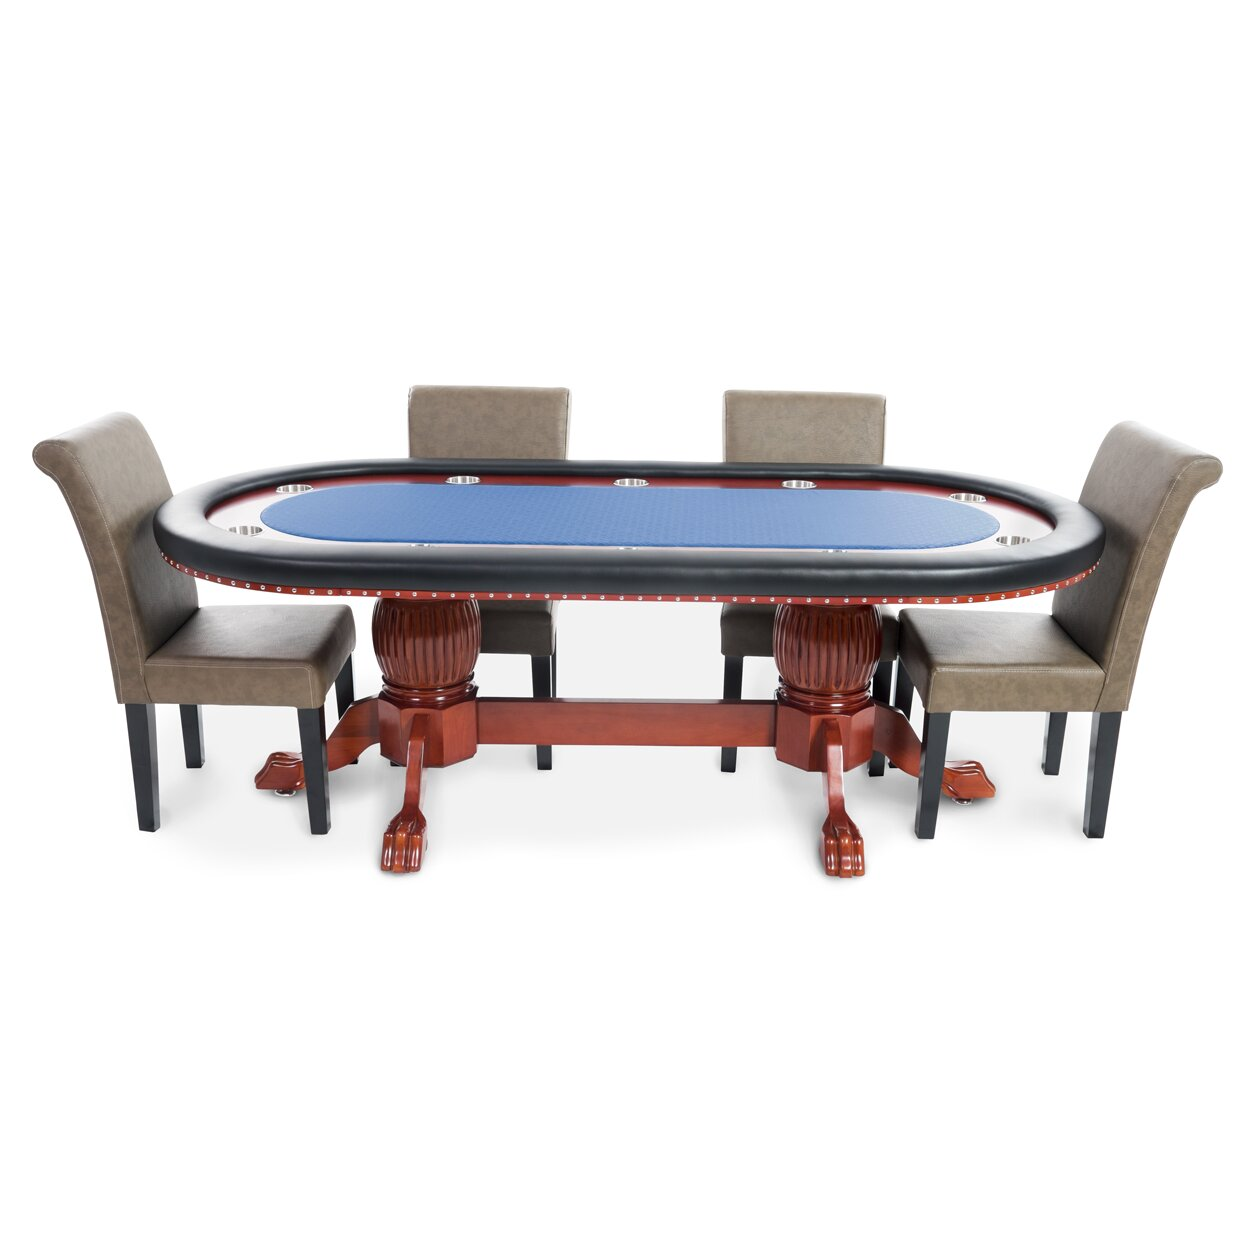 BBO Poker Rockwell 8 Piece Poker Dining Table Set with  : BBO Poker Rockwell 8 Piece Poker Dining Table Set with Lounge Chairs RWPRPACK6 from www.wayfair.com size 1250 x 1250 jpeg 120kB